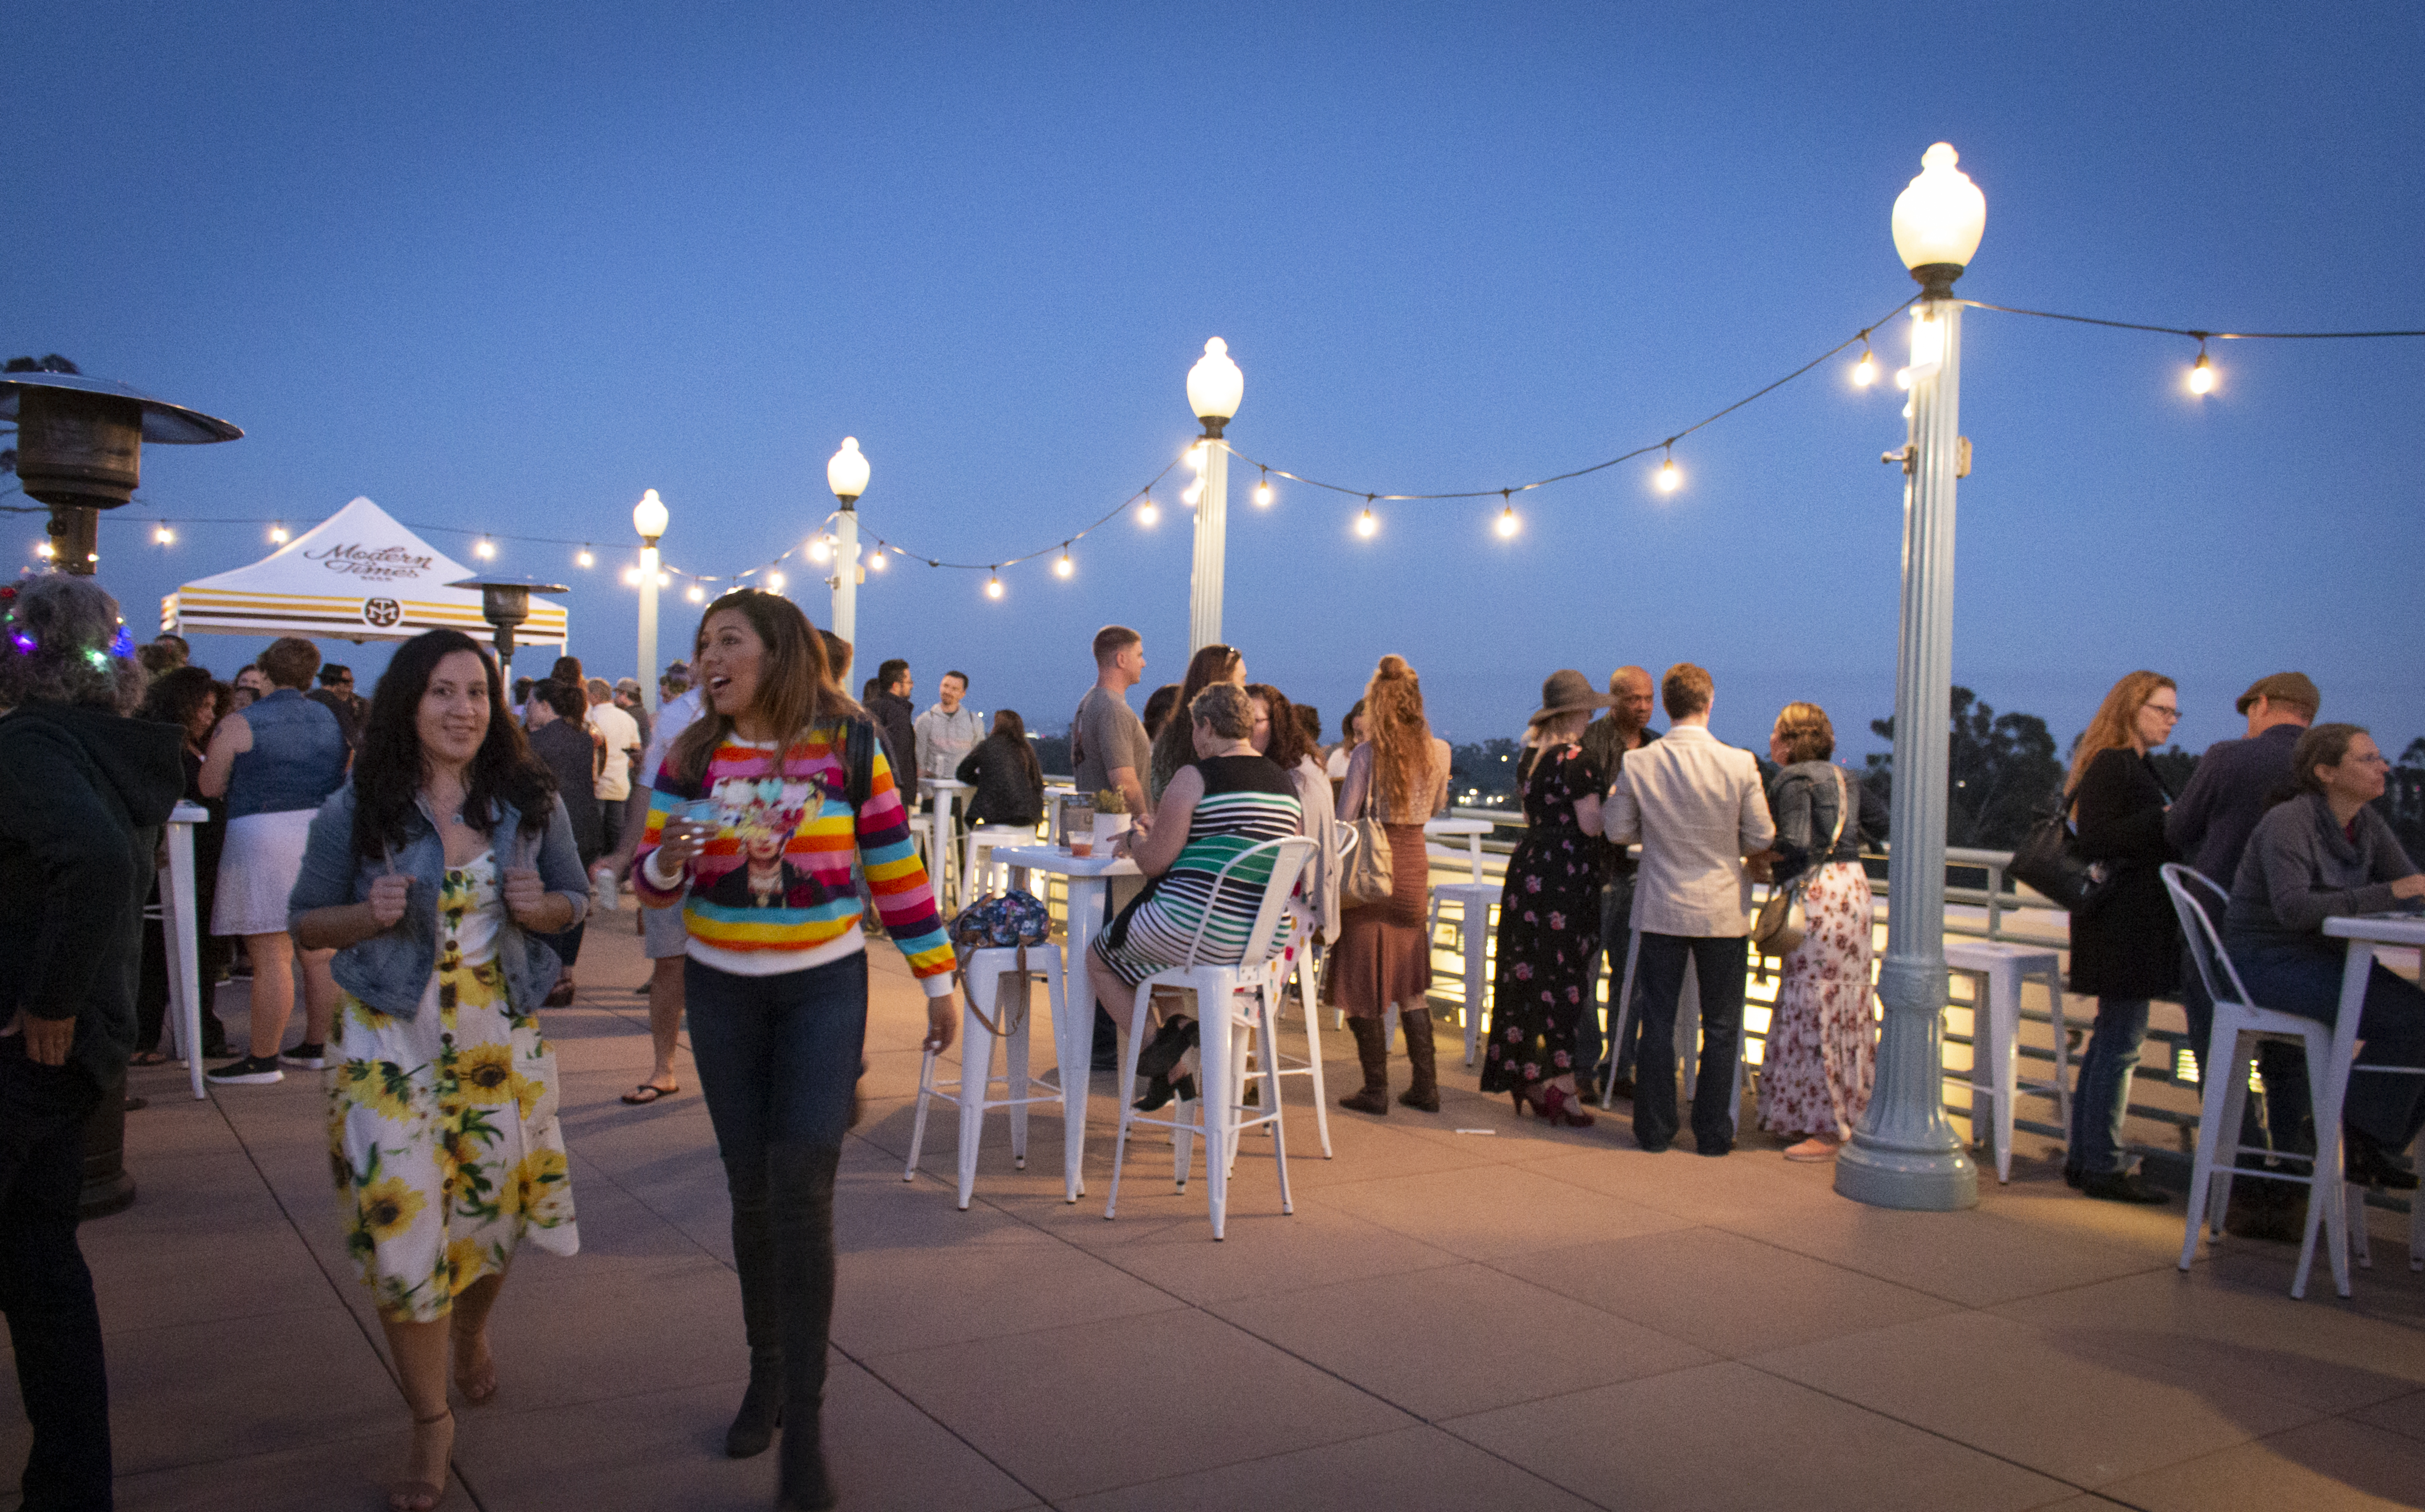 A Natural History-themed trivia night on the roof of the San Diego Natural History Museum attracts a loyal, and different crowd from typical daytime guests.  Photo by SDNHM.